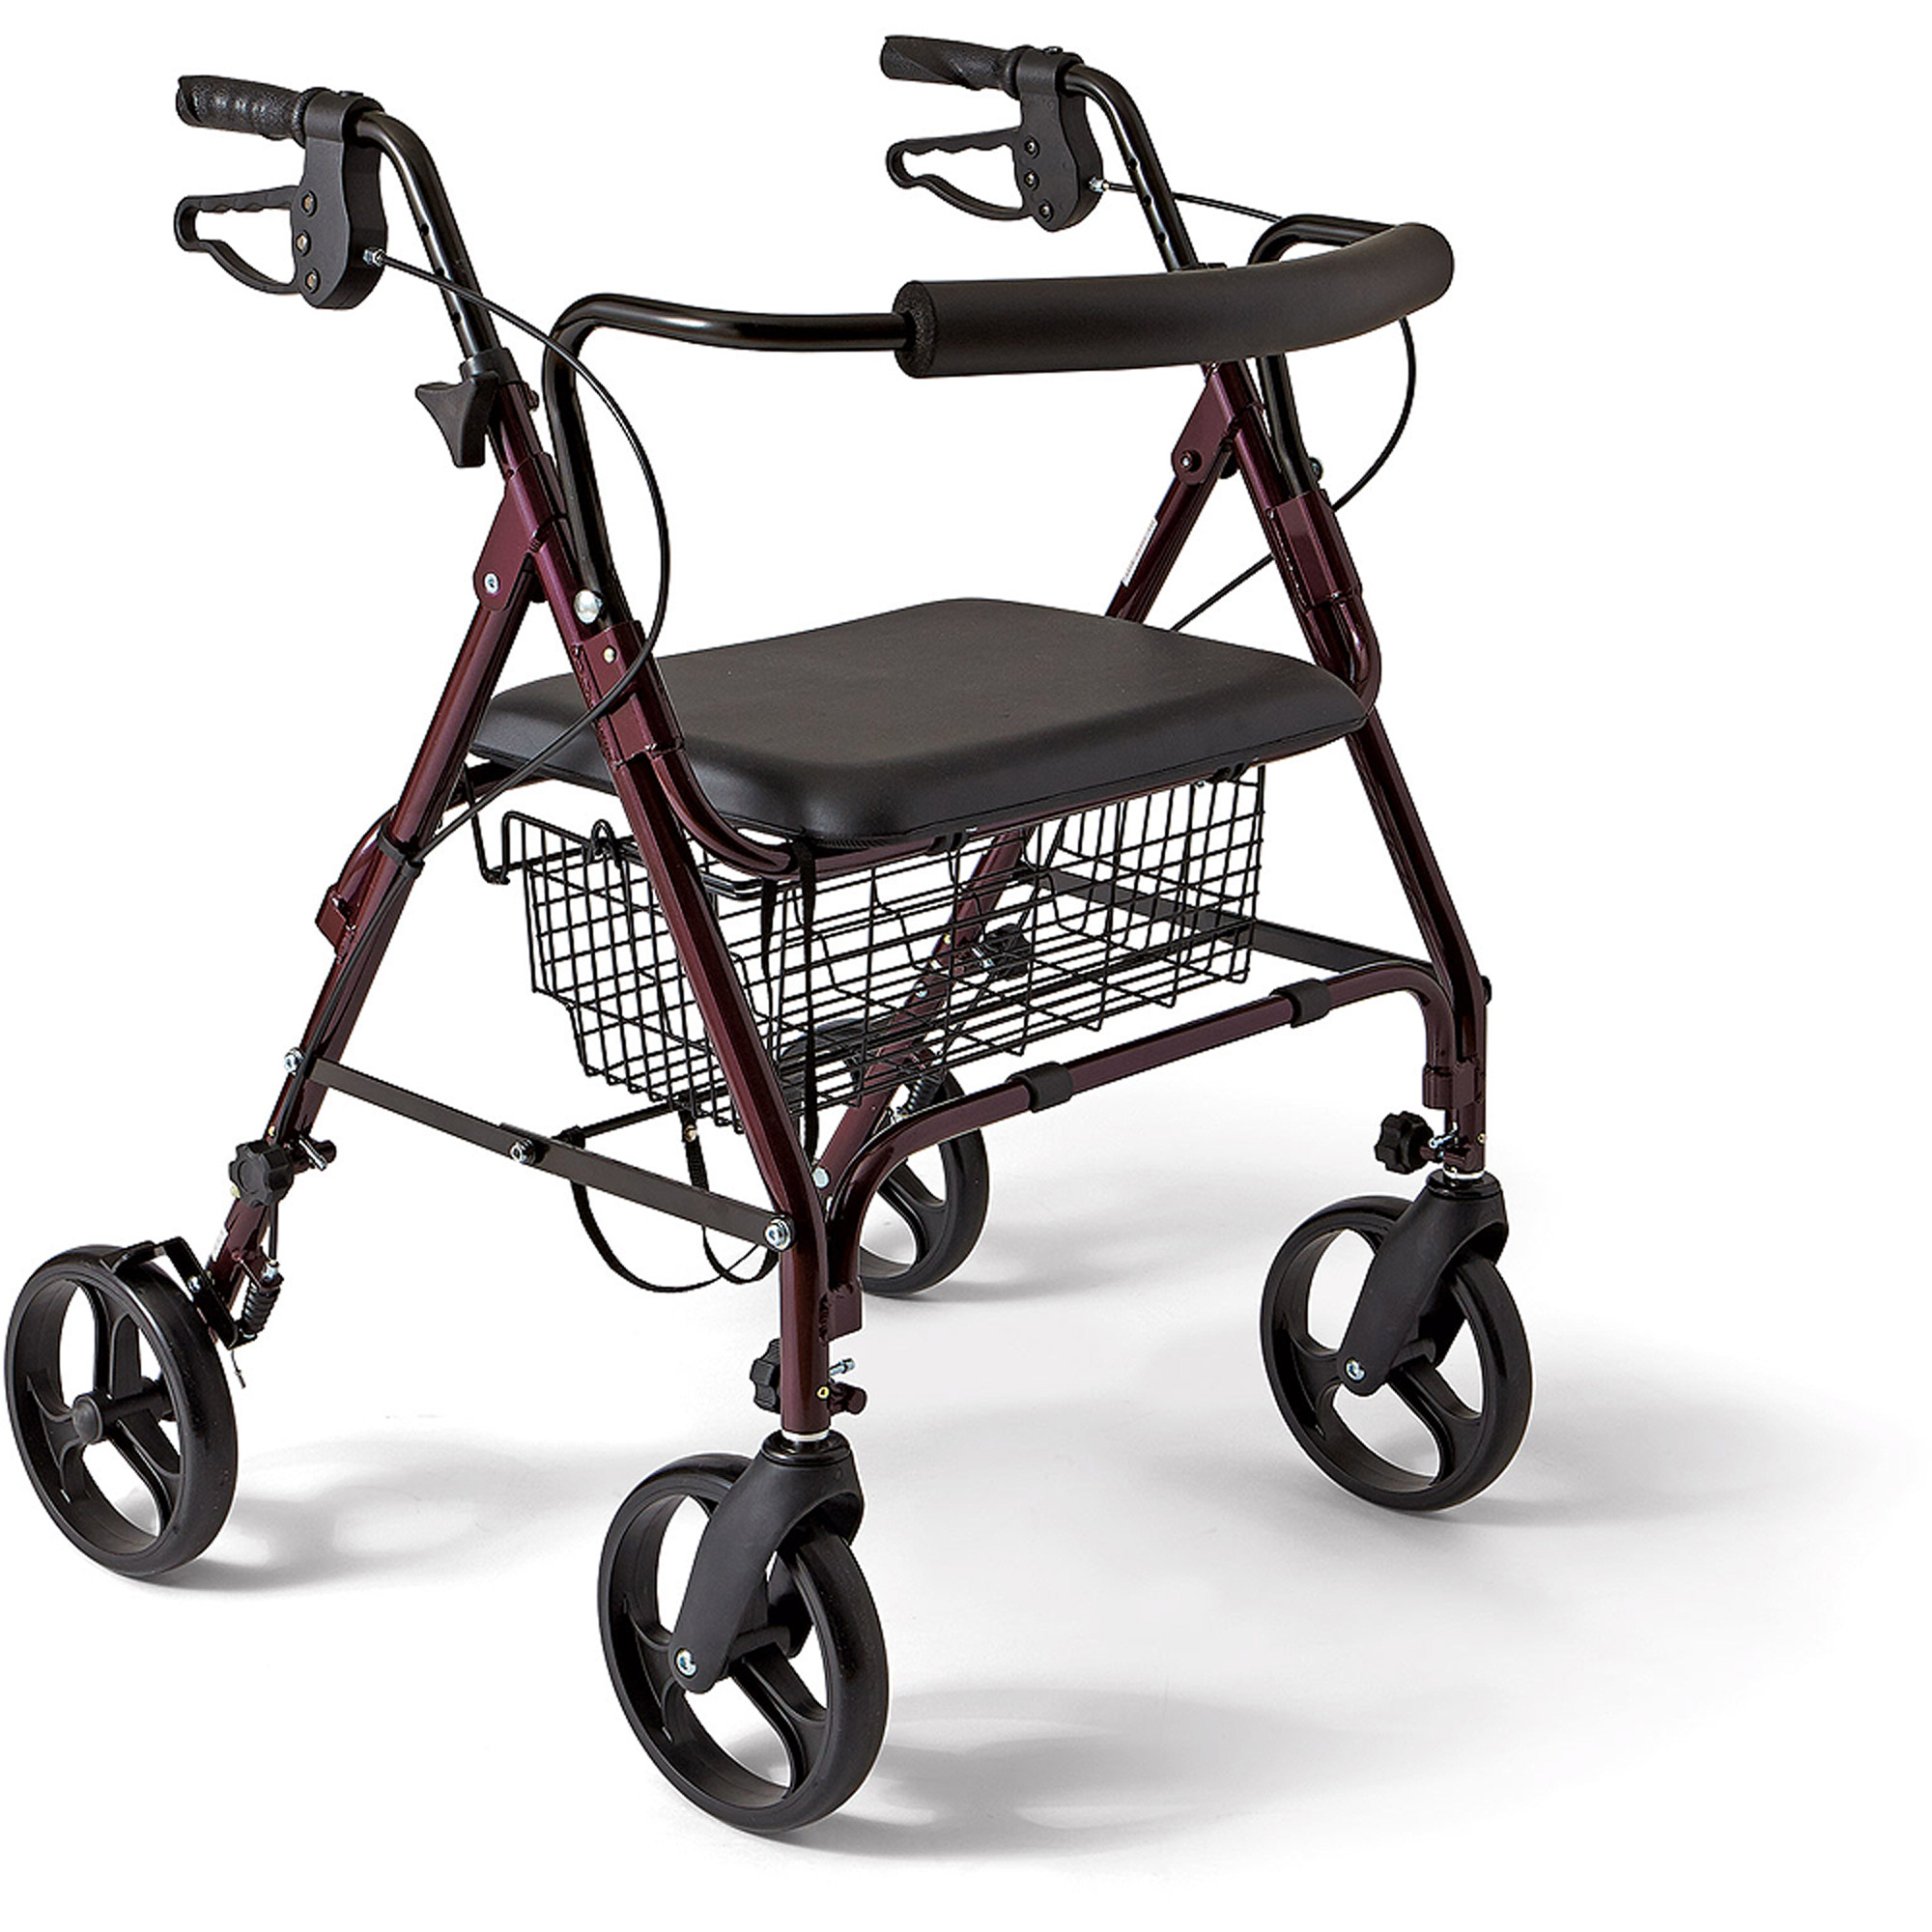 Medline Heavy Duty Bariatric Rollator Walker, 400 lbs Capacity